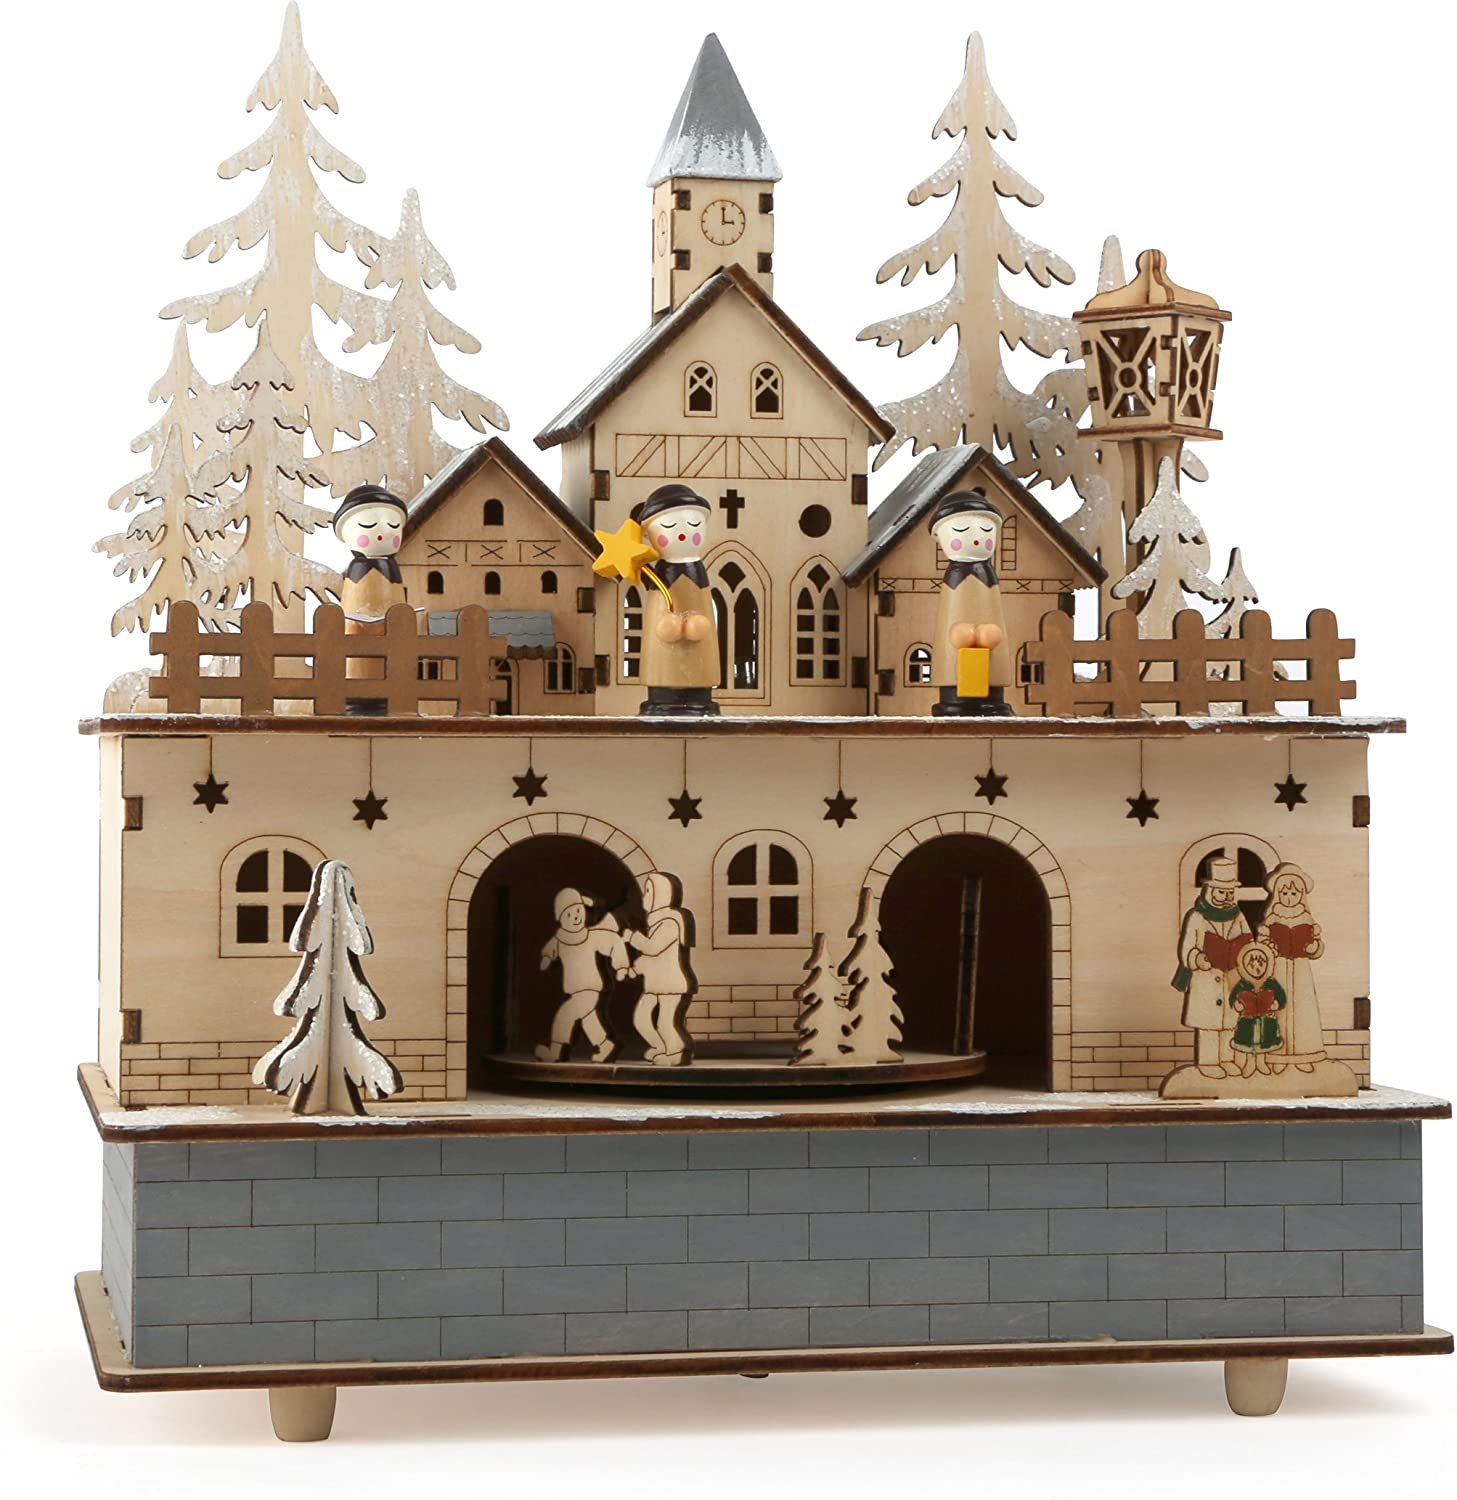 Small Foot Little Village Music Box and Lamp, Wood, Nature, 24 x 21 x 11 cm